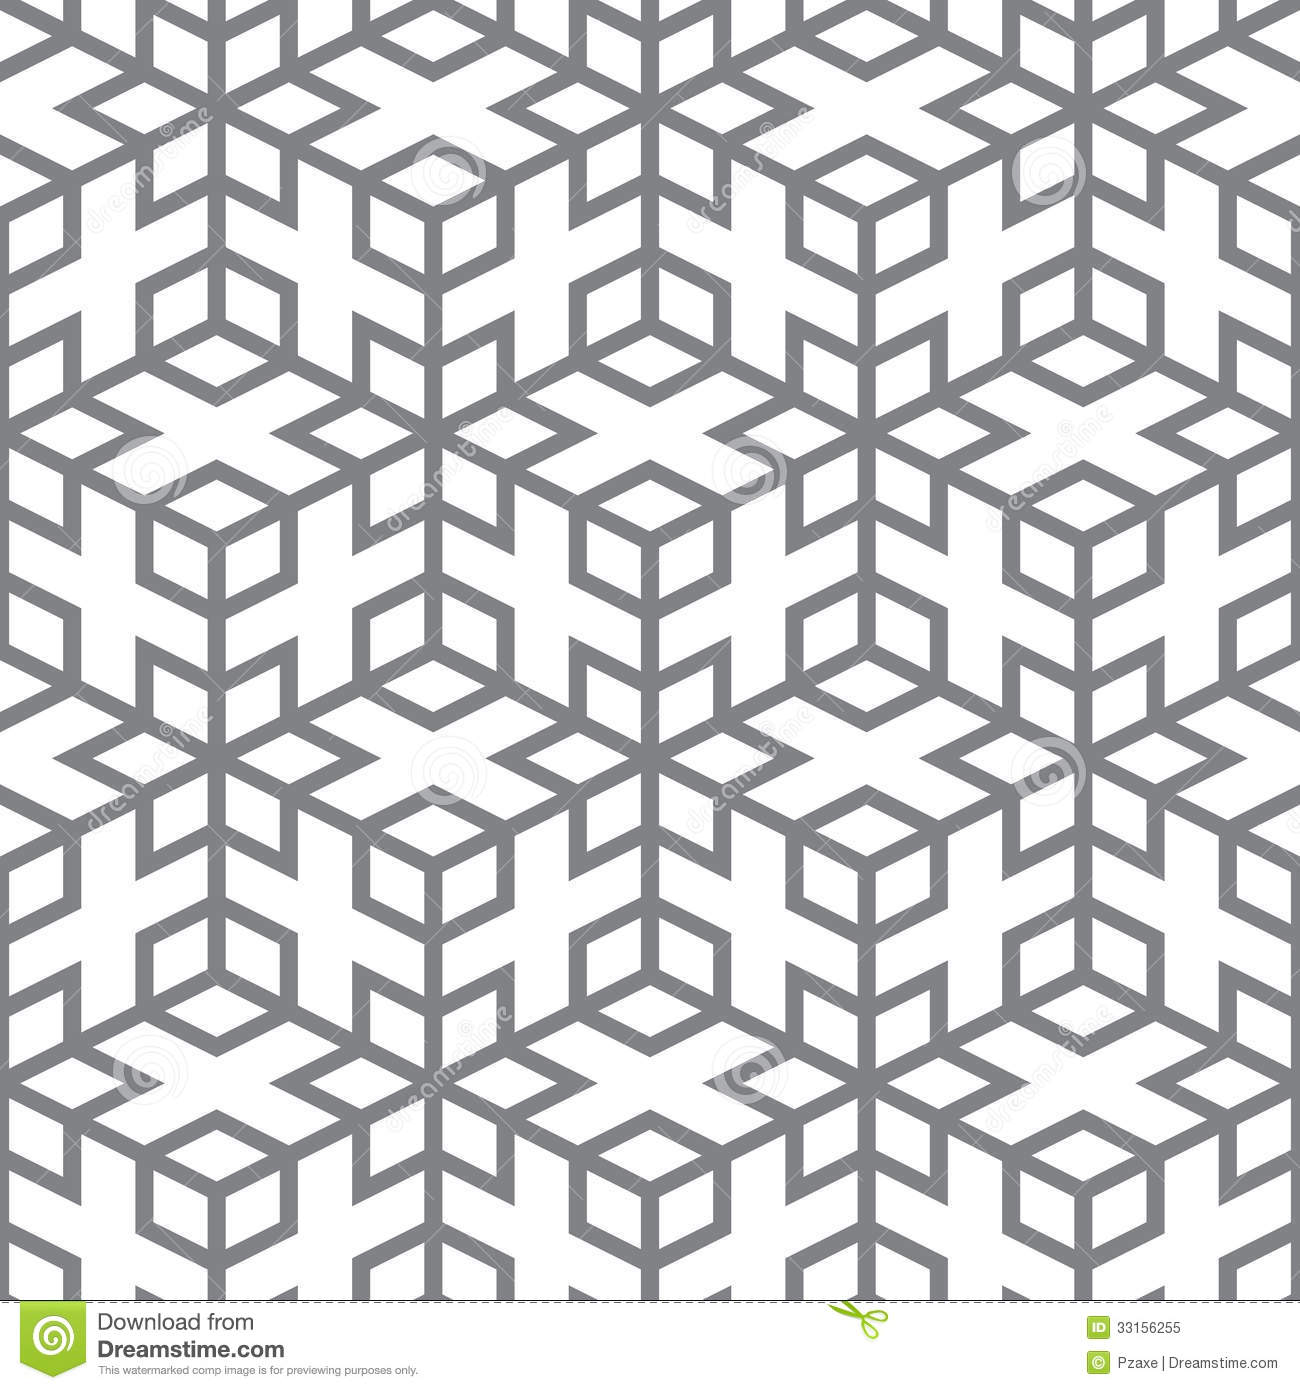 Geometric Line Design Patterns : Vector pattern geometric design from gray lines stock